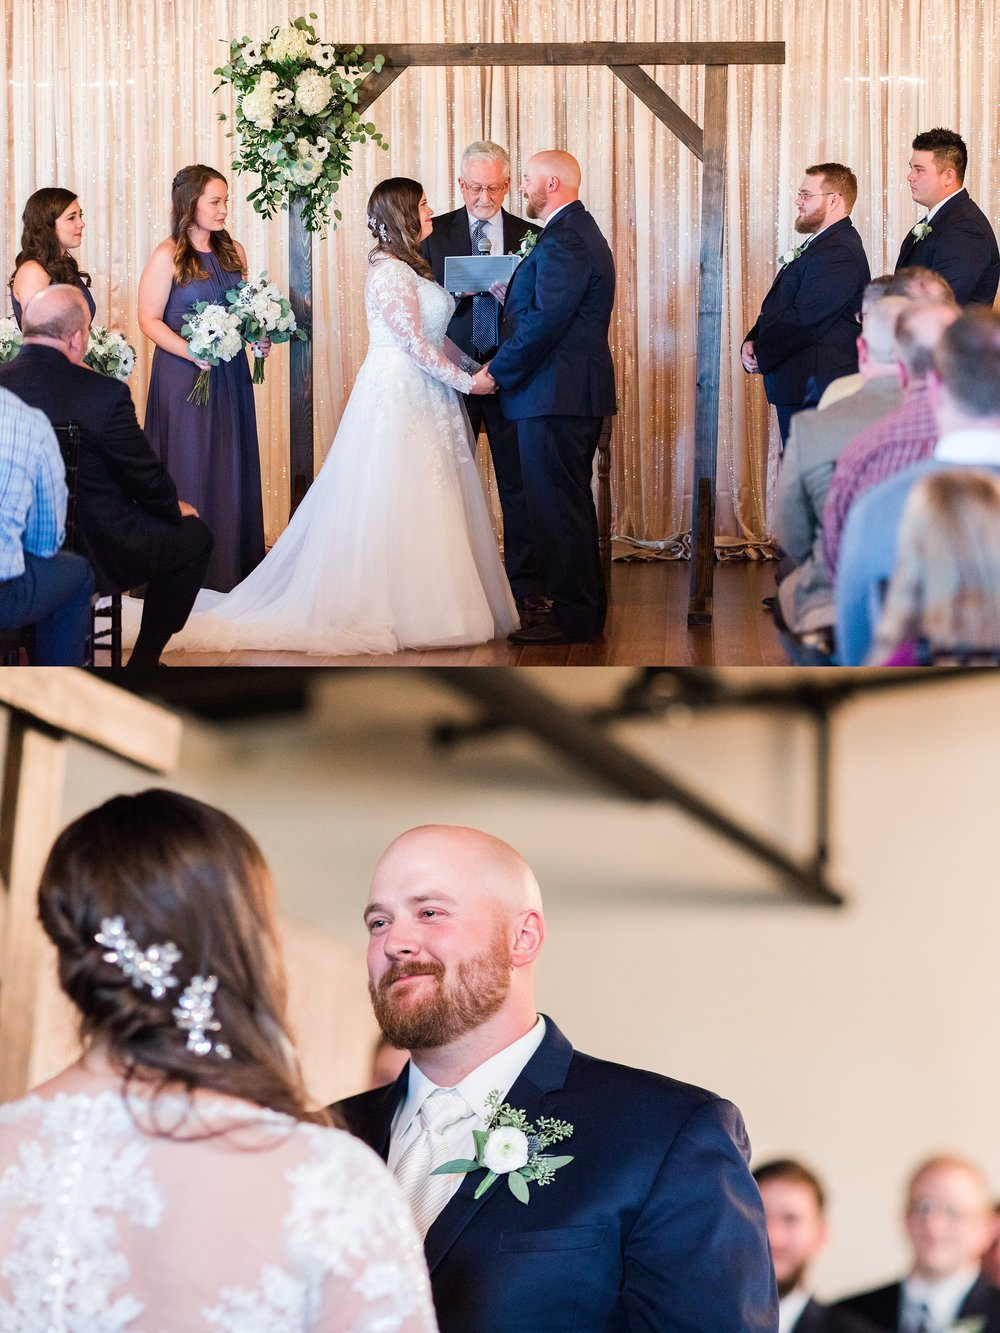 Old Towne Event Center Wedding -Photography By: Jessica McBroom